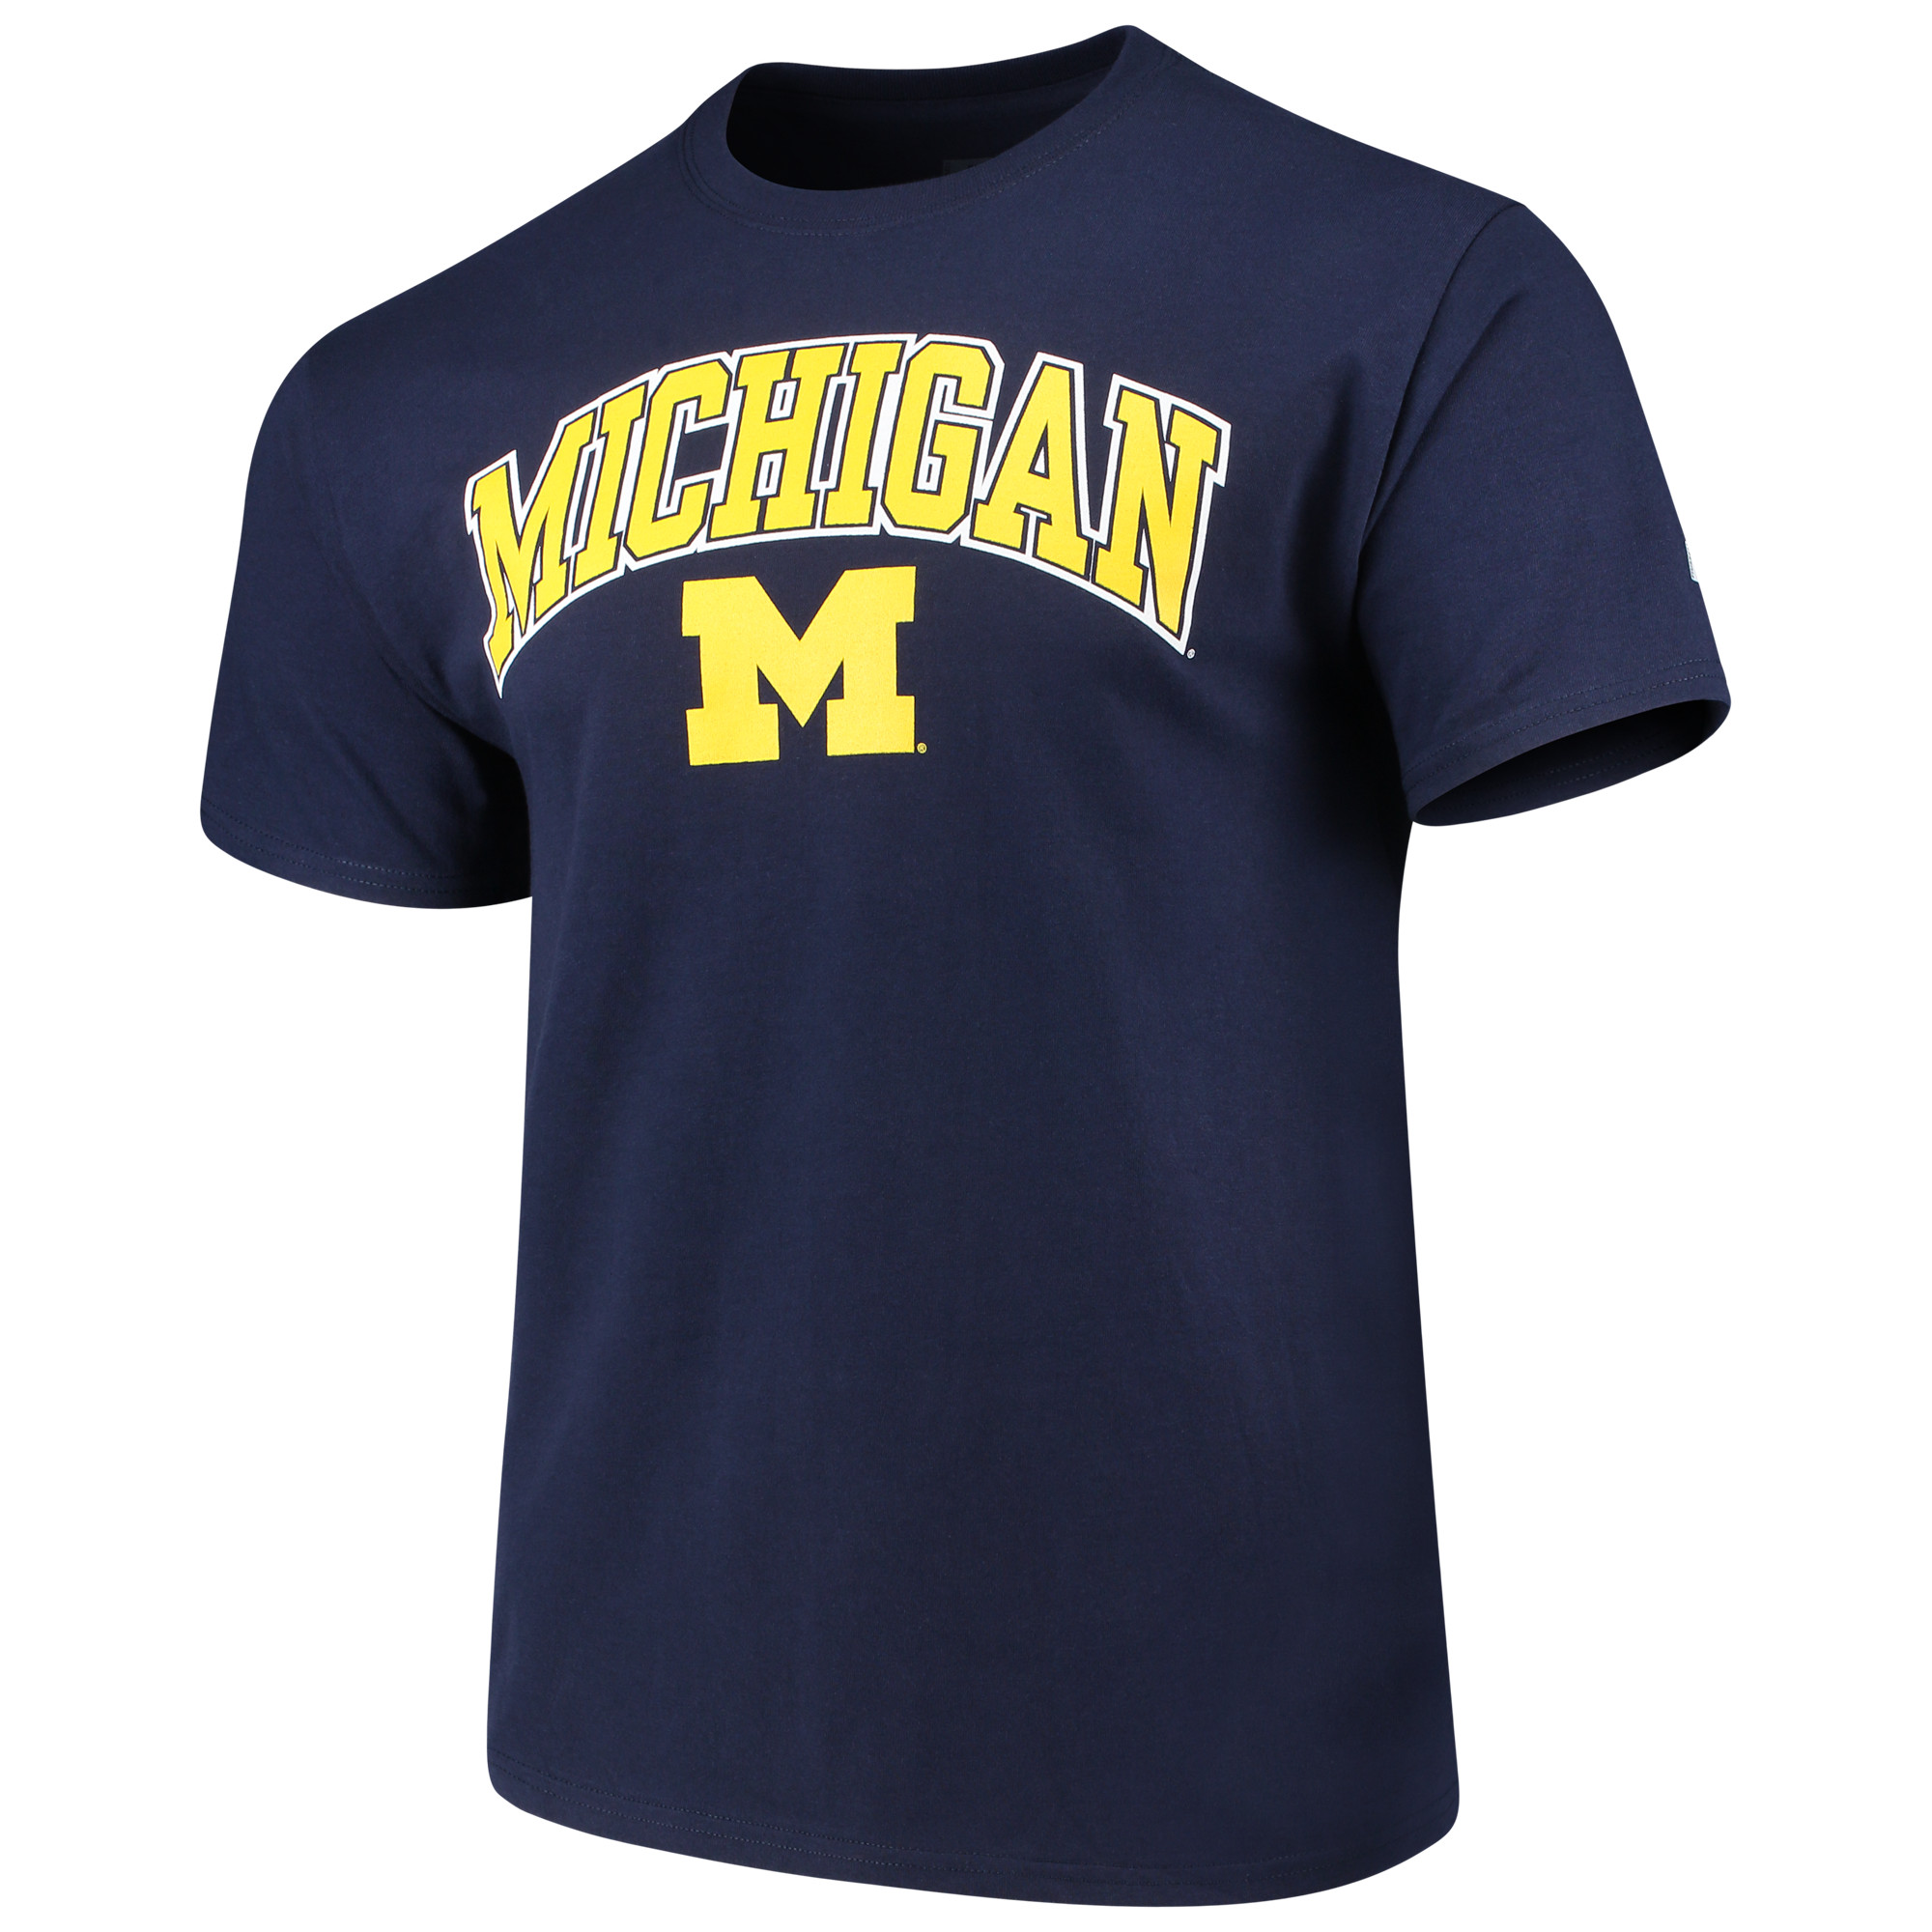 Men's Russell Navy Michigan Wolverines Crew Core Print T-Shirt